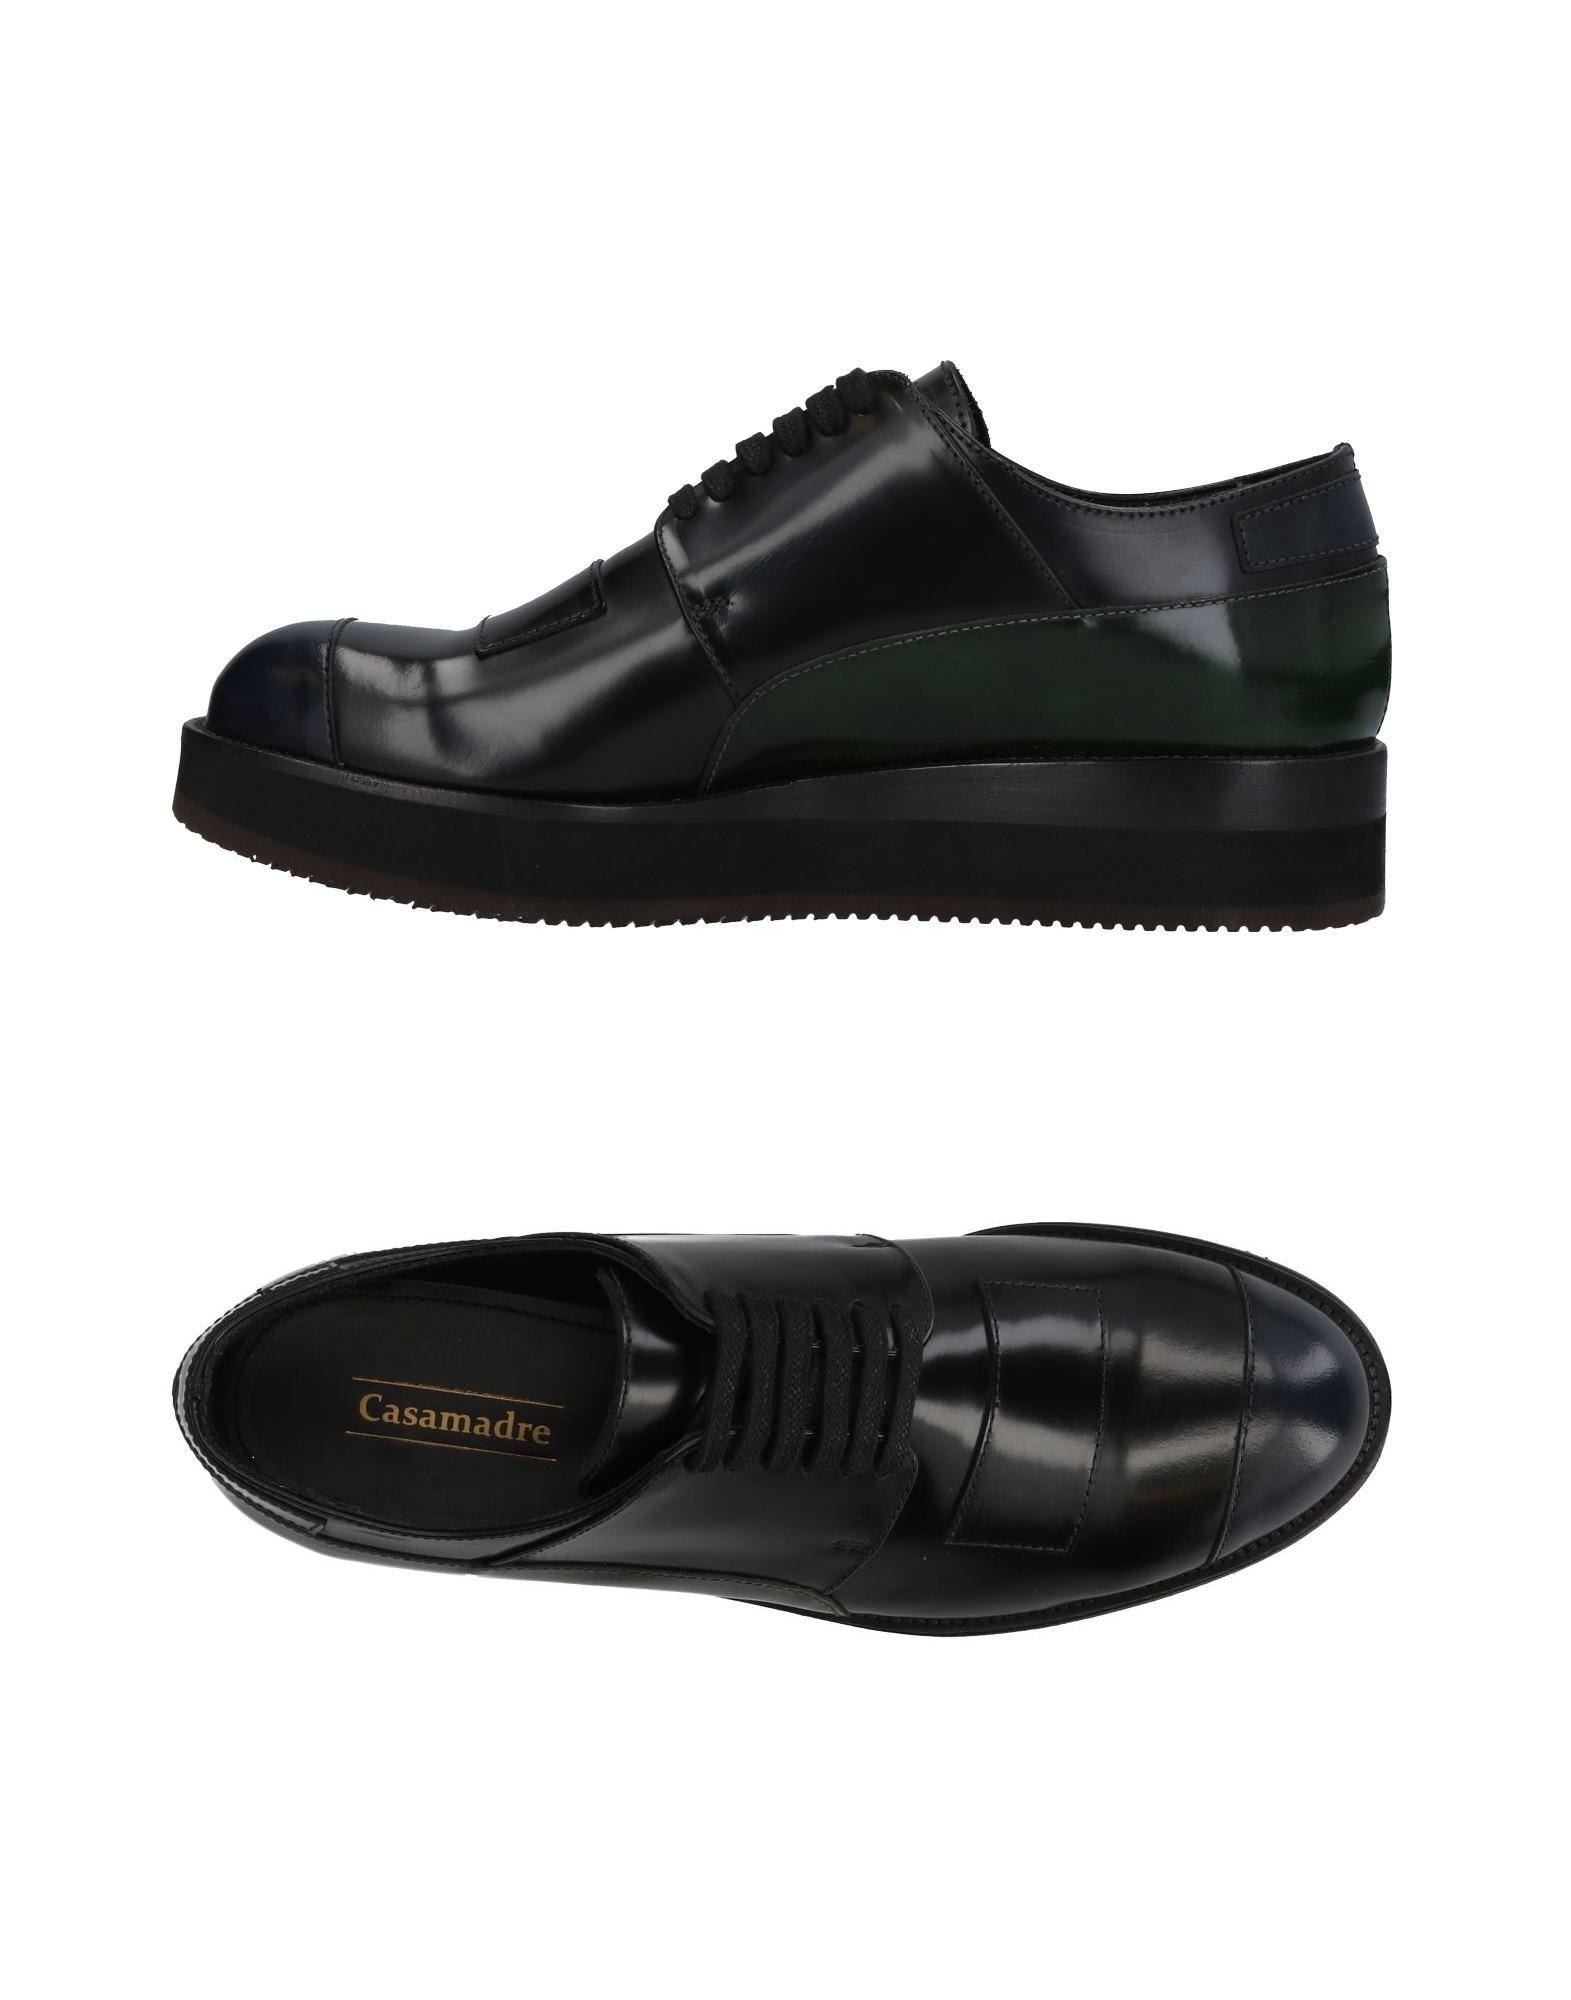 FOOTWEAR - Lace-up shoes Casamadre 40Uvr4gnoD